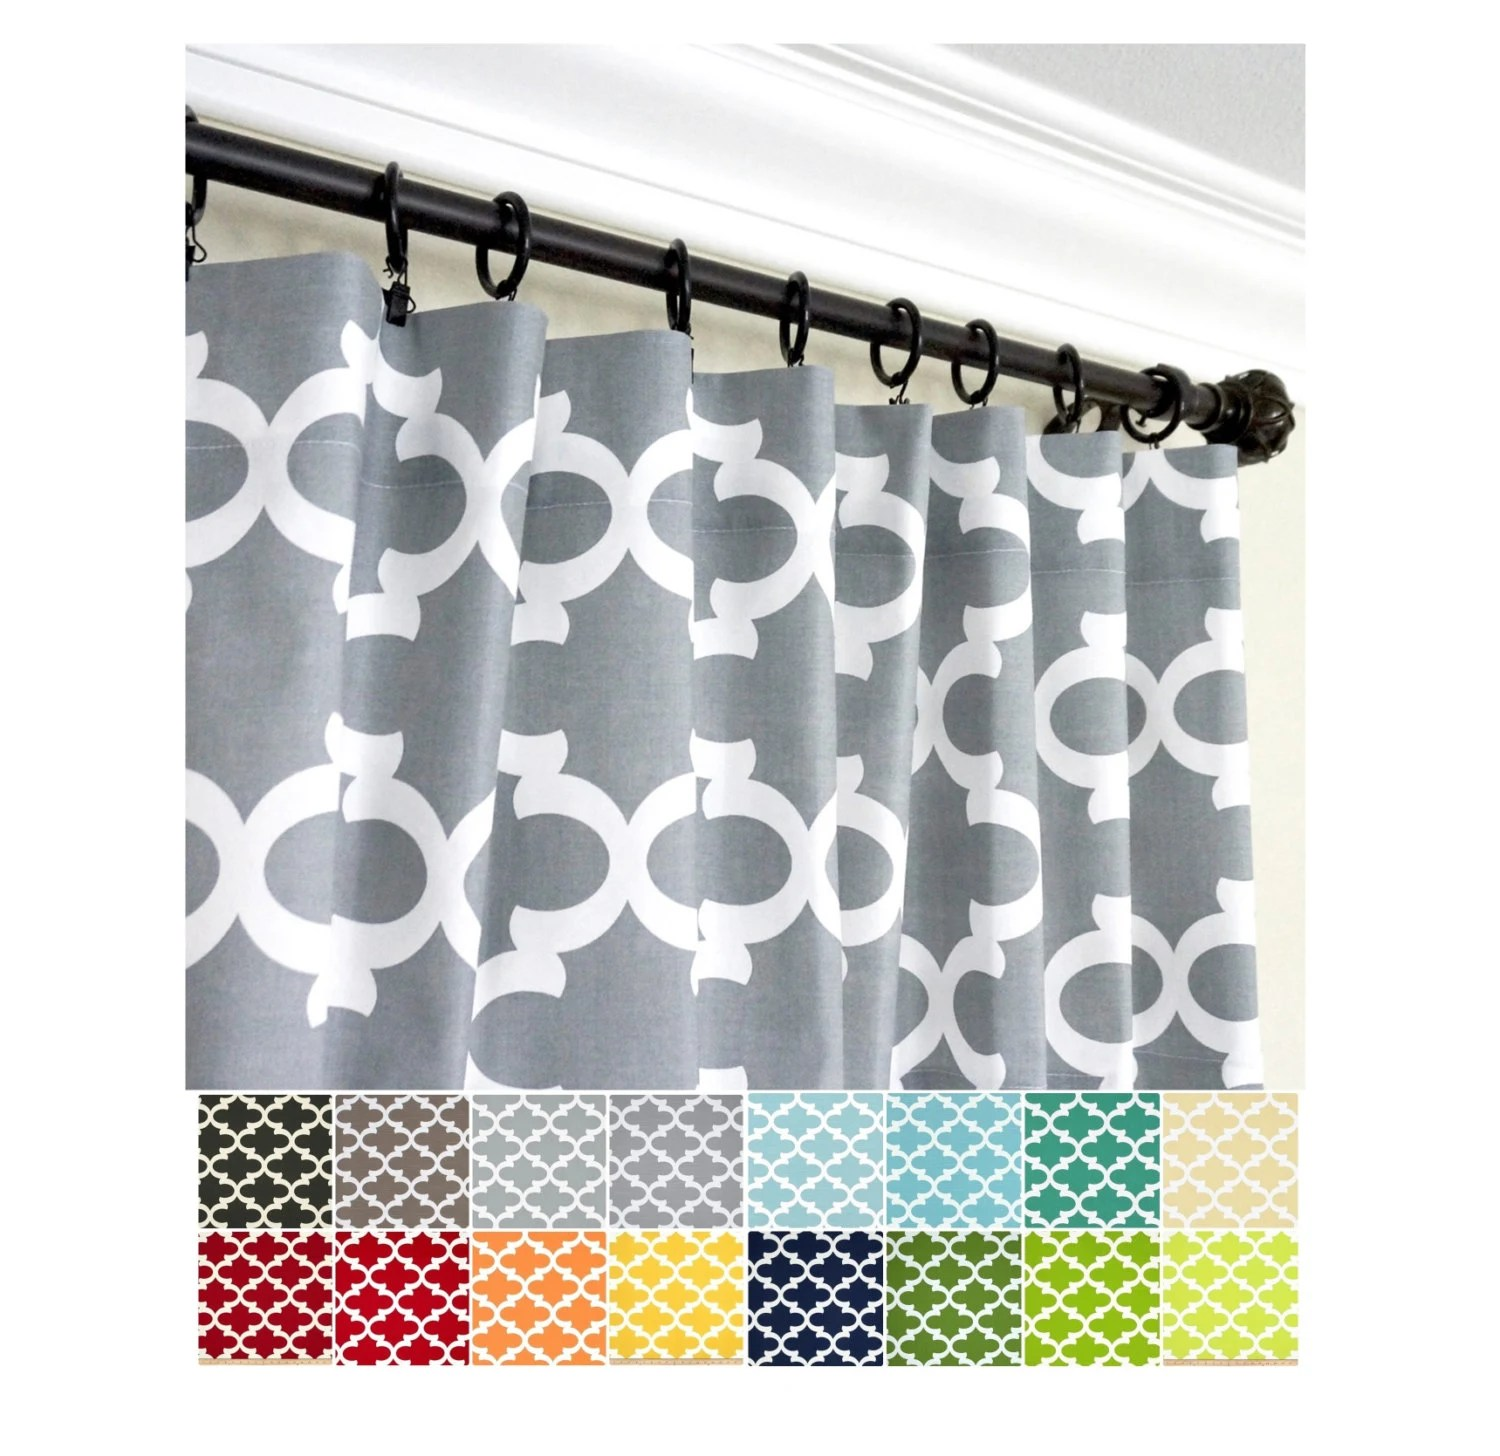 Black And Blue Curtains Pair Of Morrocan Window Curtains Grey Green Black Blue Yellow Orange Red Curtain Panels Kitchen Curtainsquartrefoil Curtains